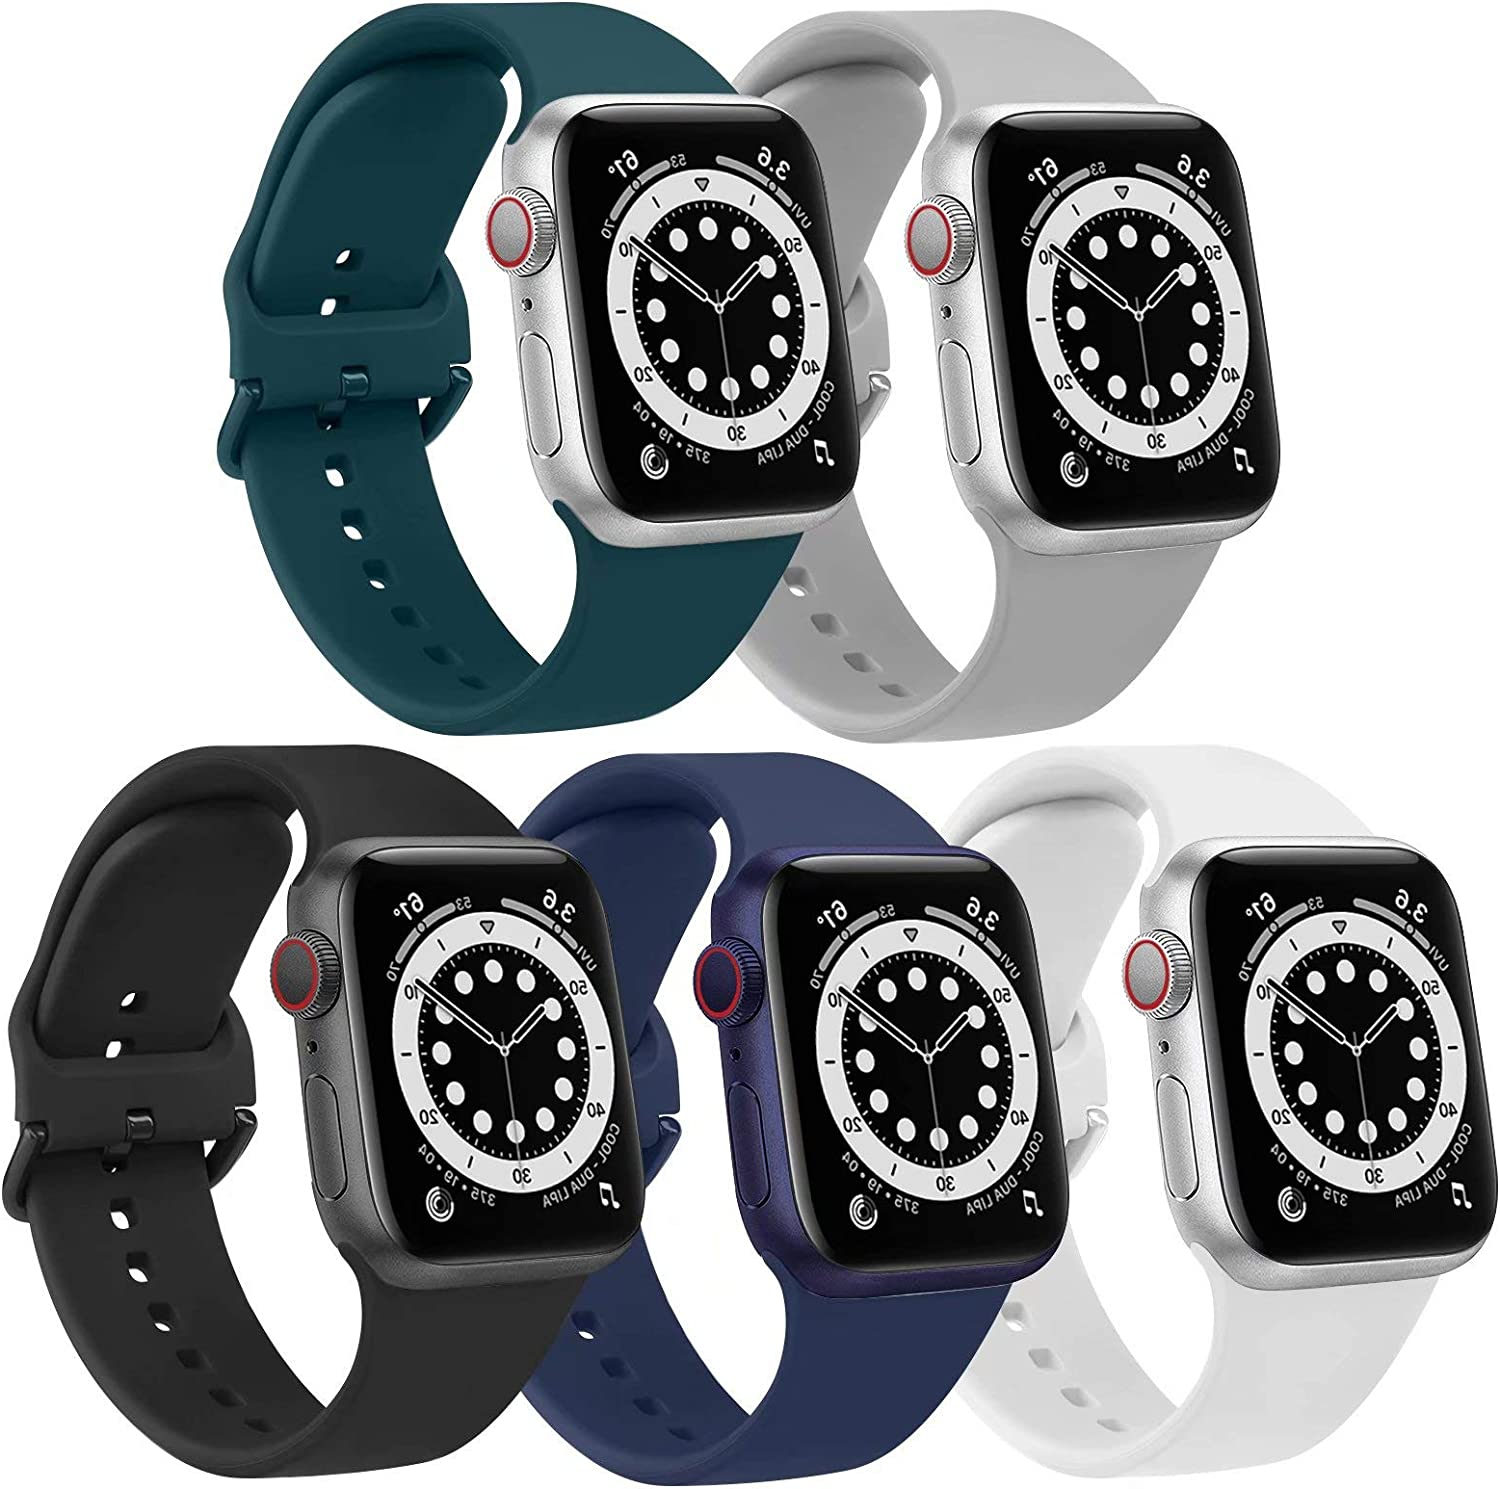 [5 Pack] Bands Compatible with Apple Watch Band 44mm 42mm Soft Silicone Sport Replacement Strap (42/44mm, Black/Grey/Blue/Deep Green/White)